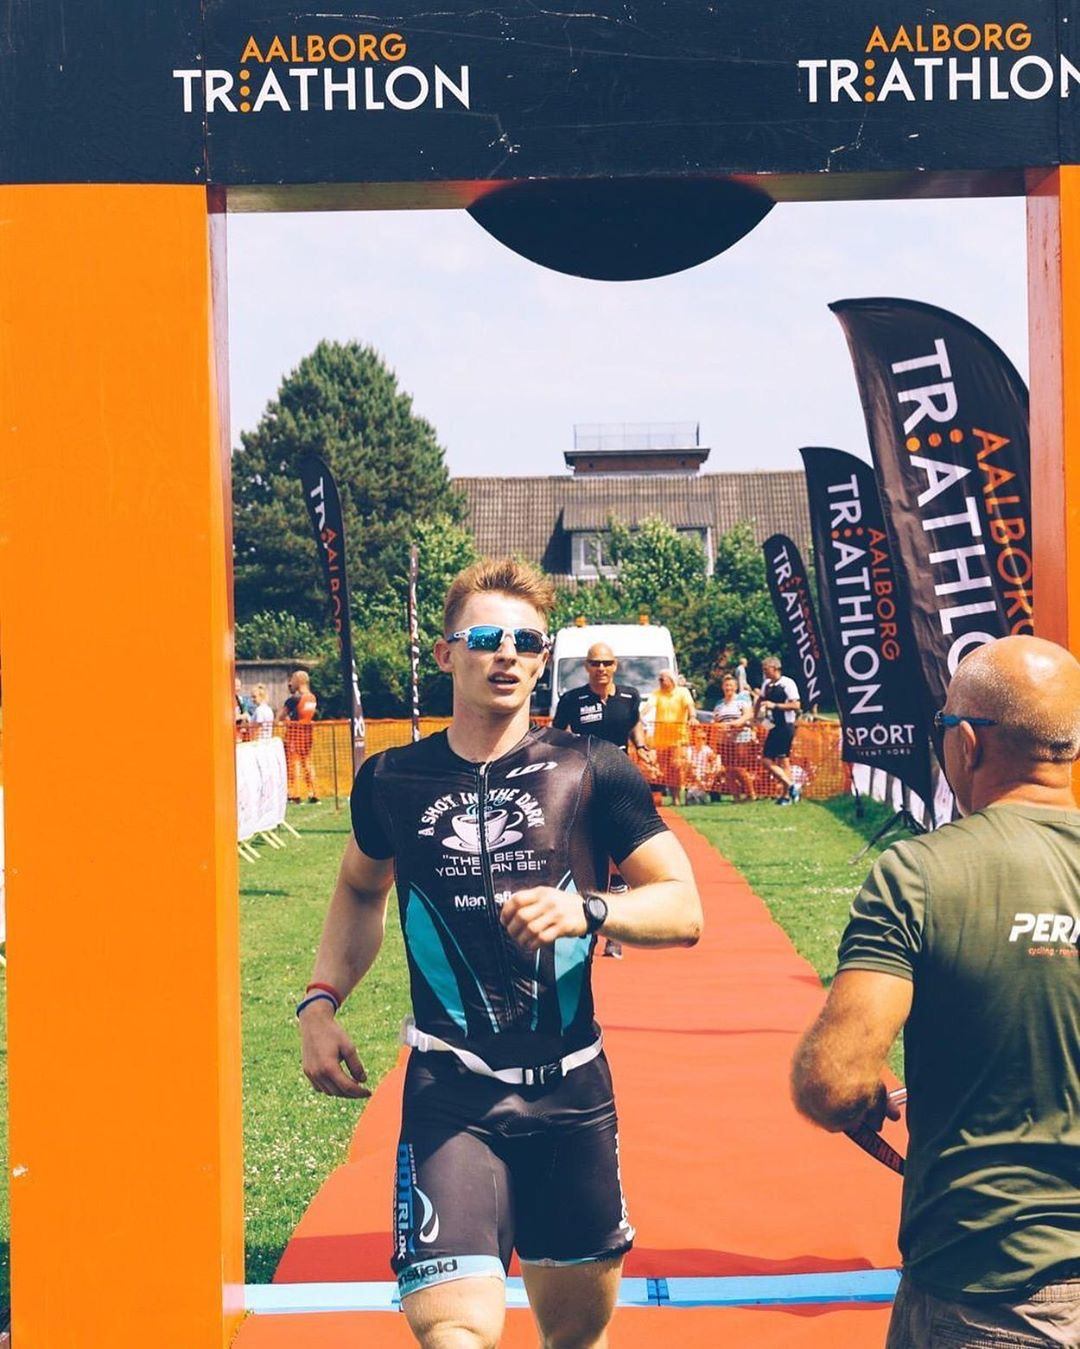 Andres crosses the finish line of the 1/4 Ironman